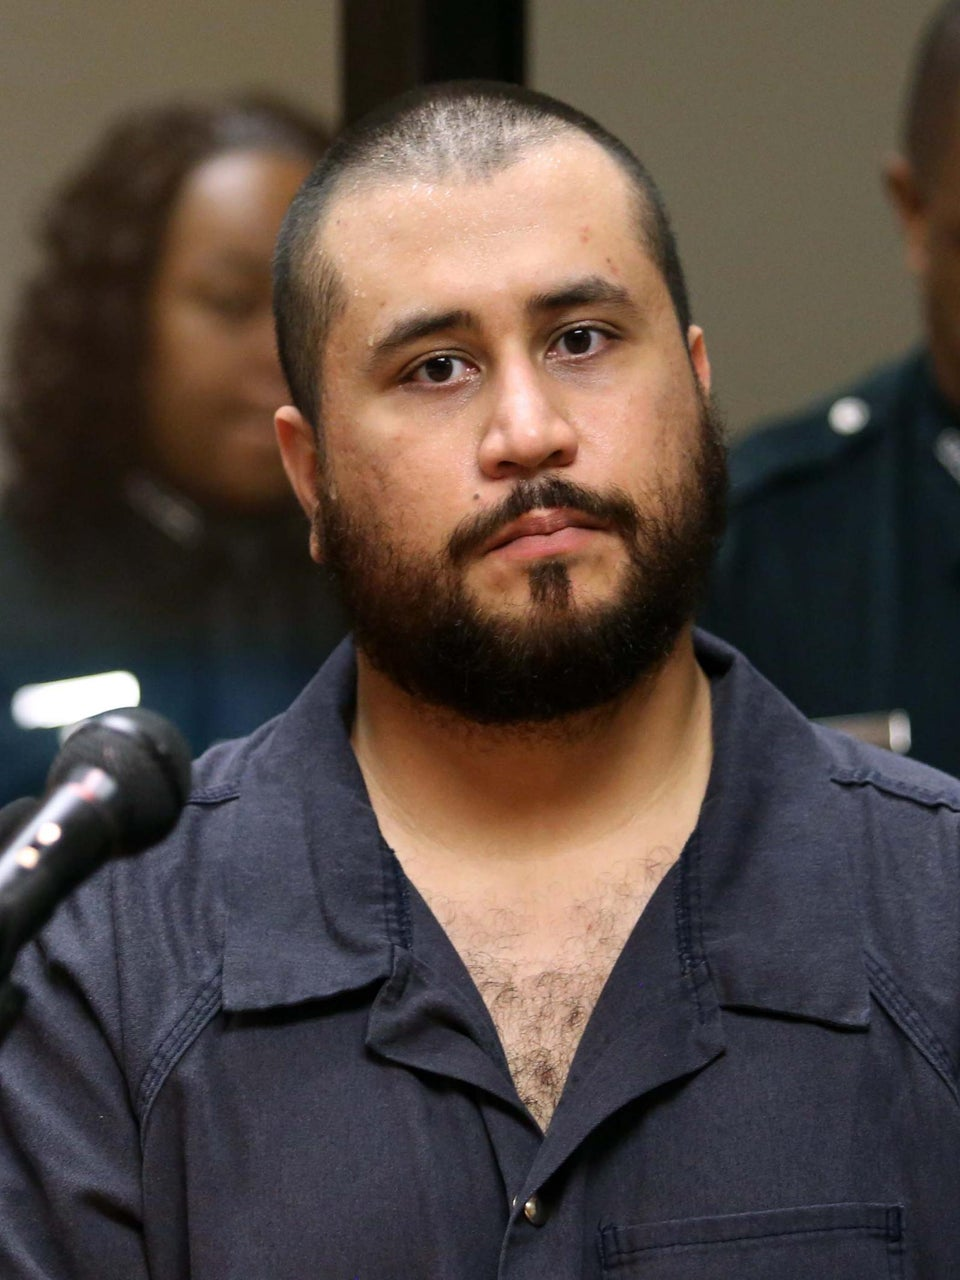 George Zimmerman is Auctioning Off The Gun He Used to Take Trayvon Martin's Life